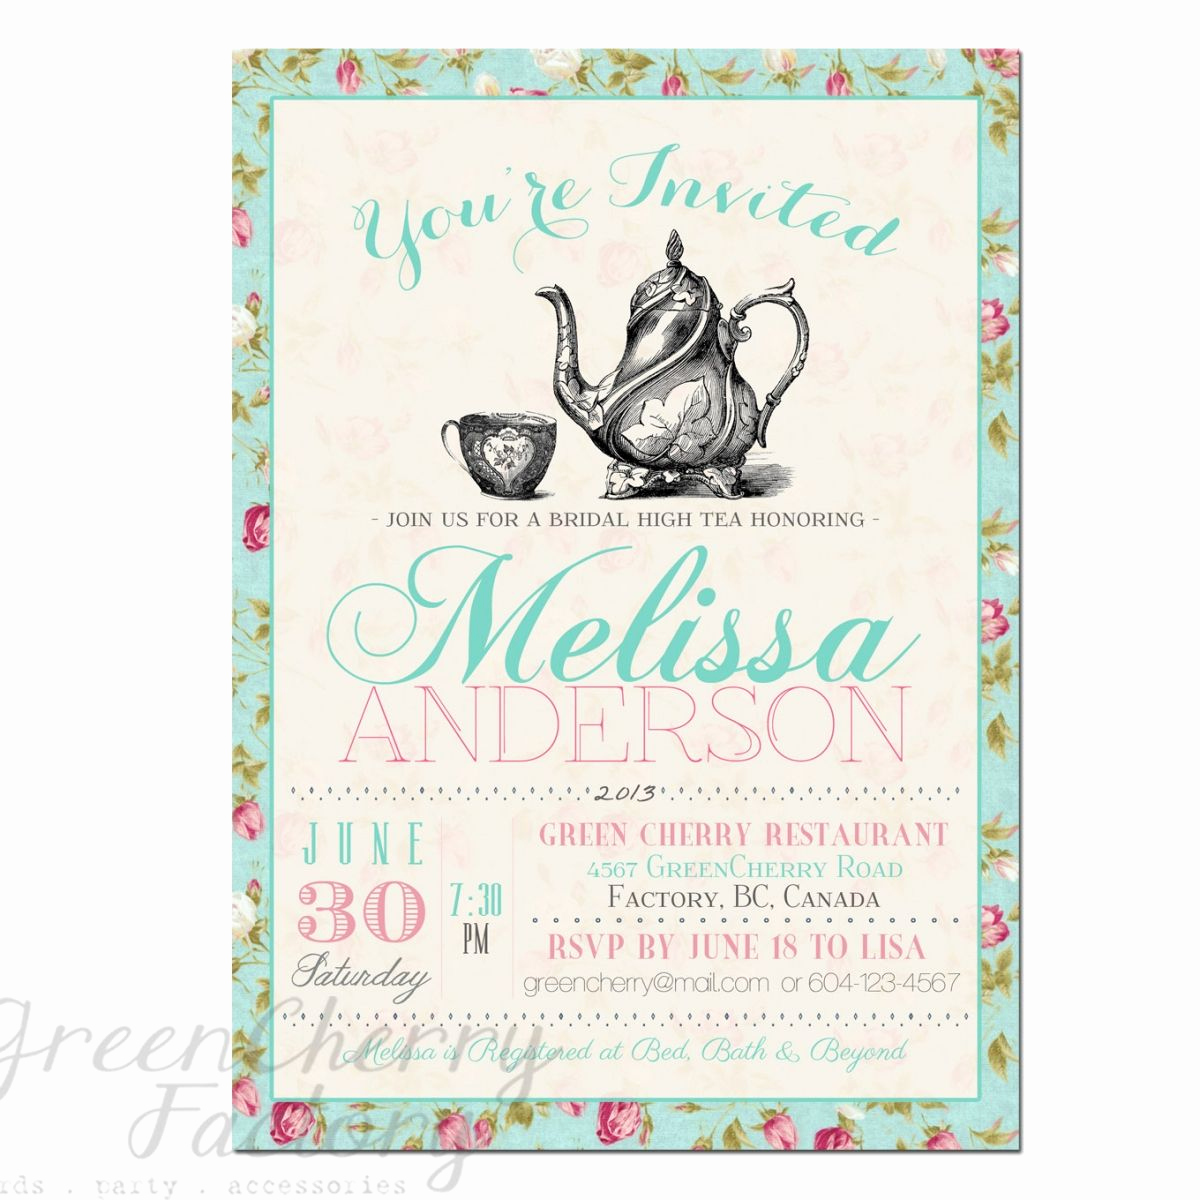 Free Printable Invitations Templates New Tea Party Invitation Templates to Print